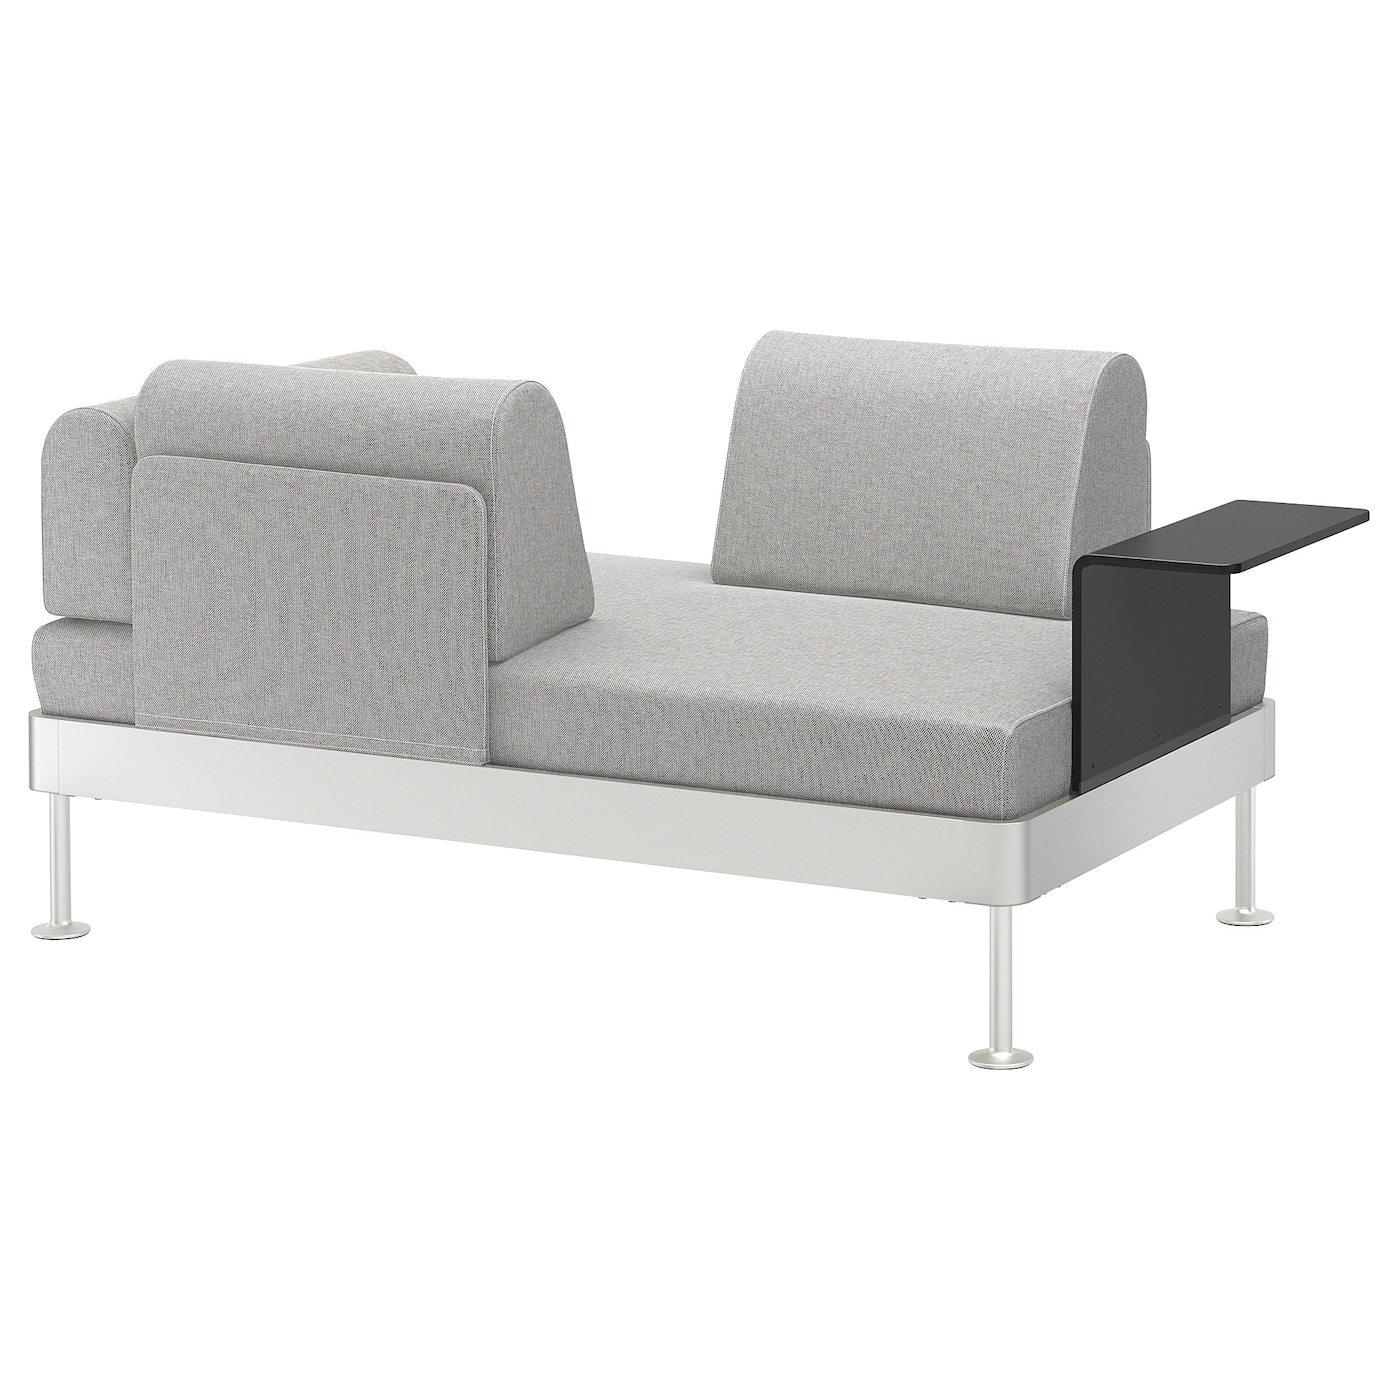 two seater sofas ikea ireland dublin. Black Bedroom Furniture Sets. Home Design Ideas